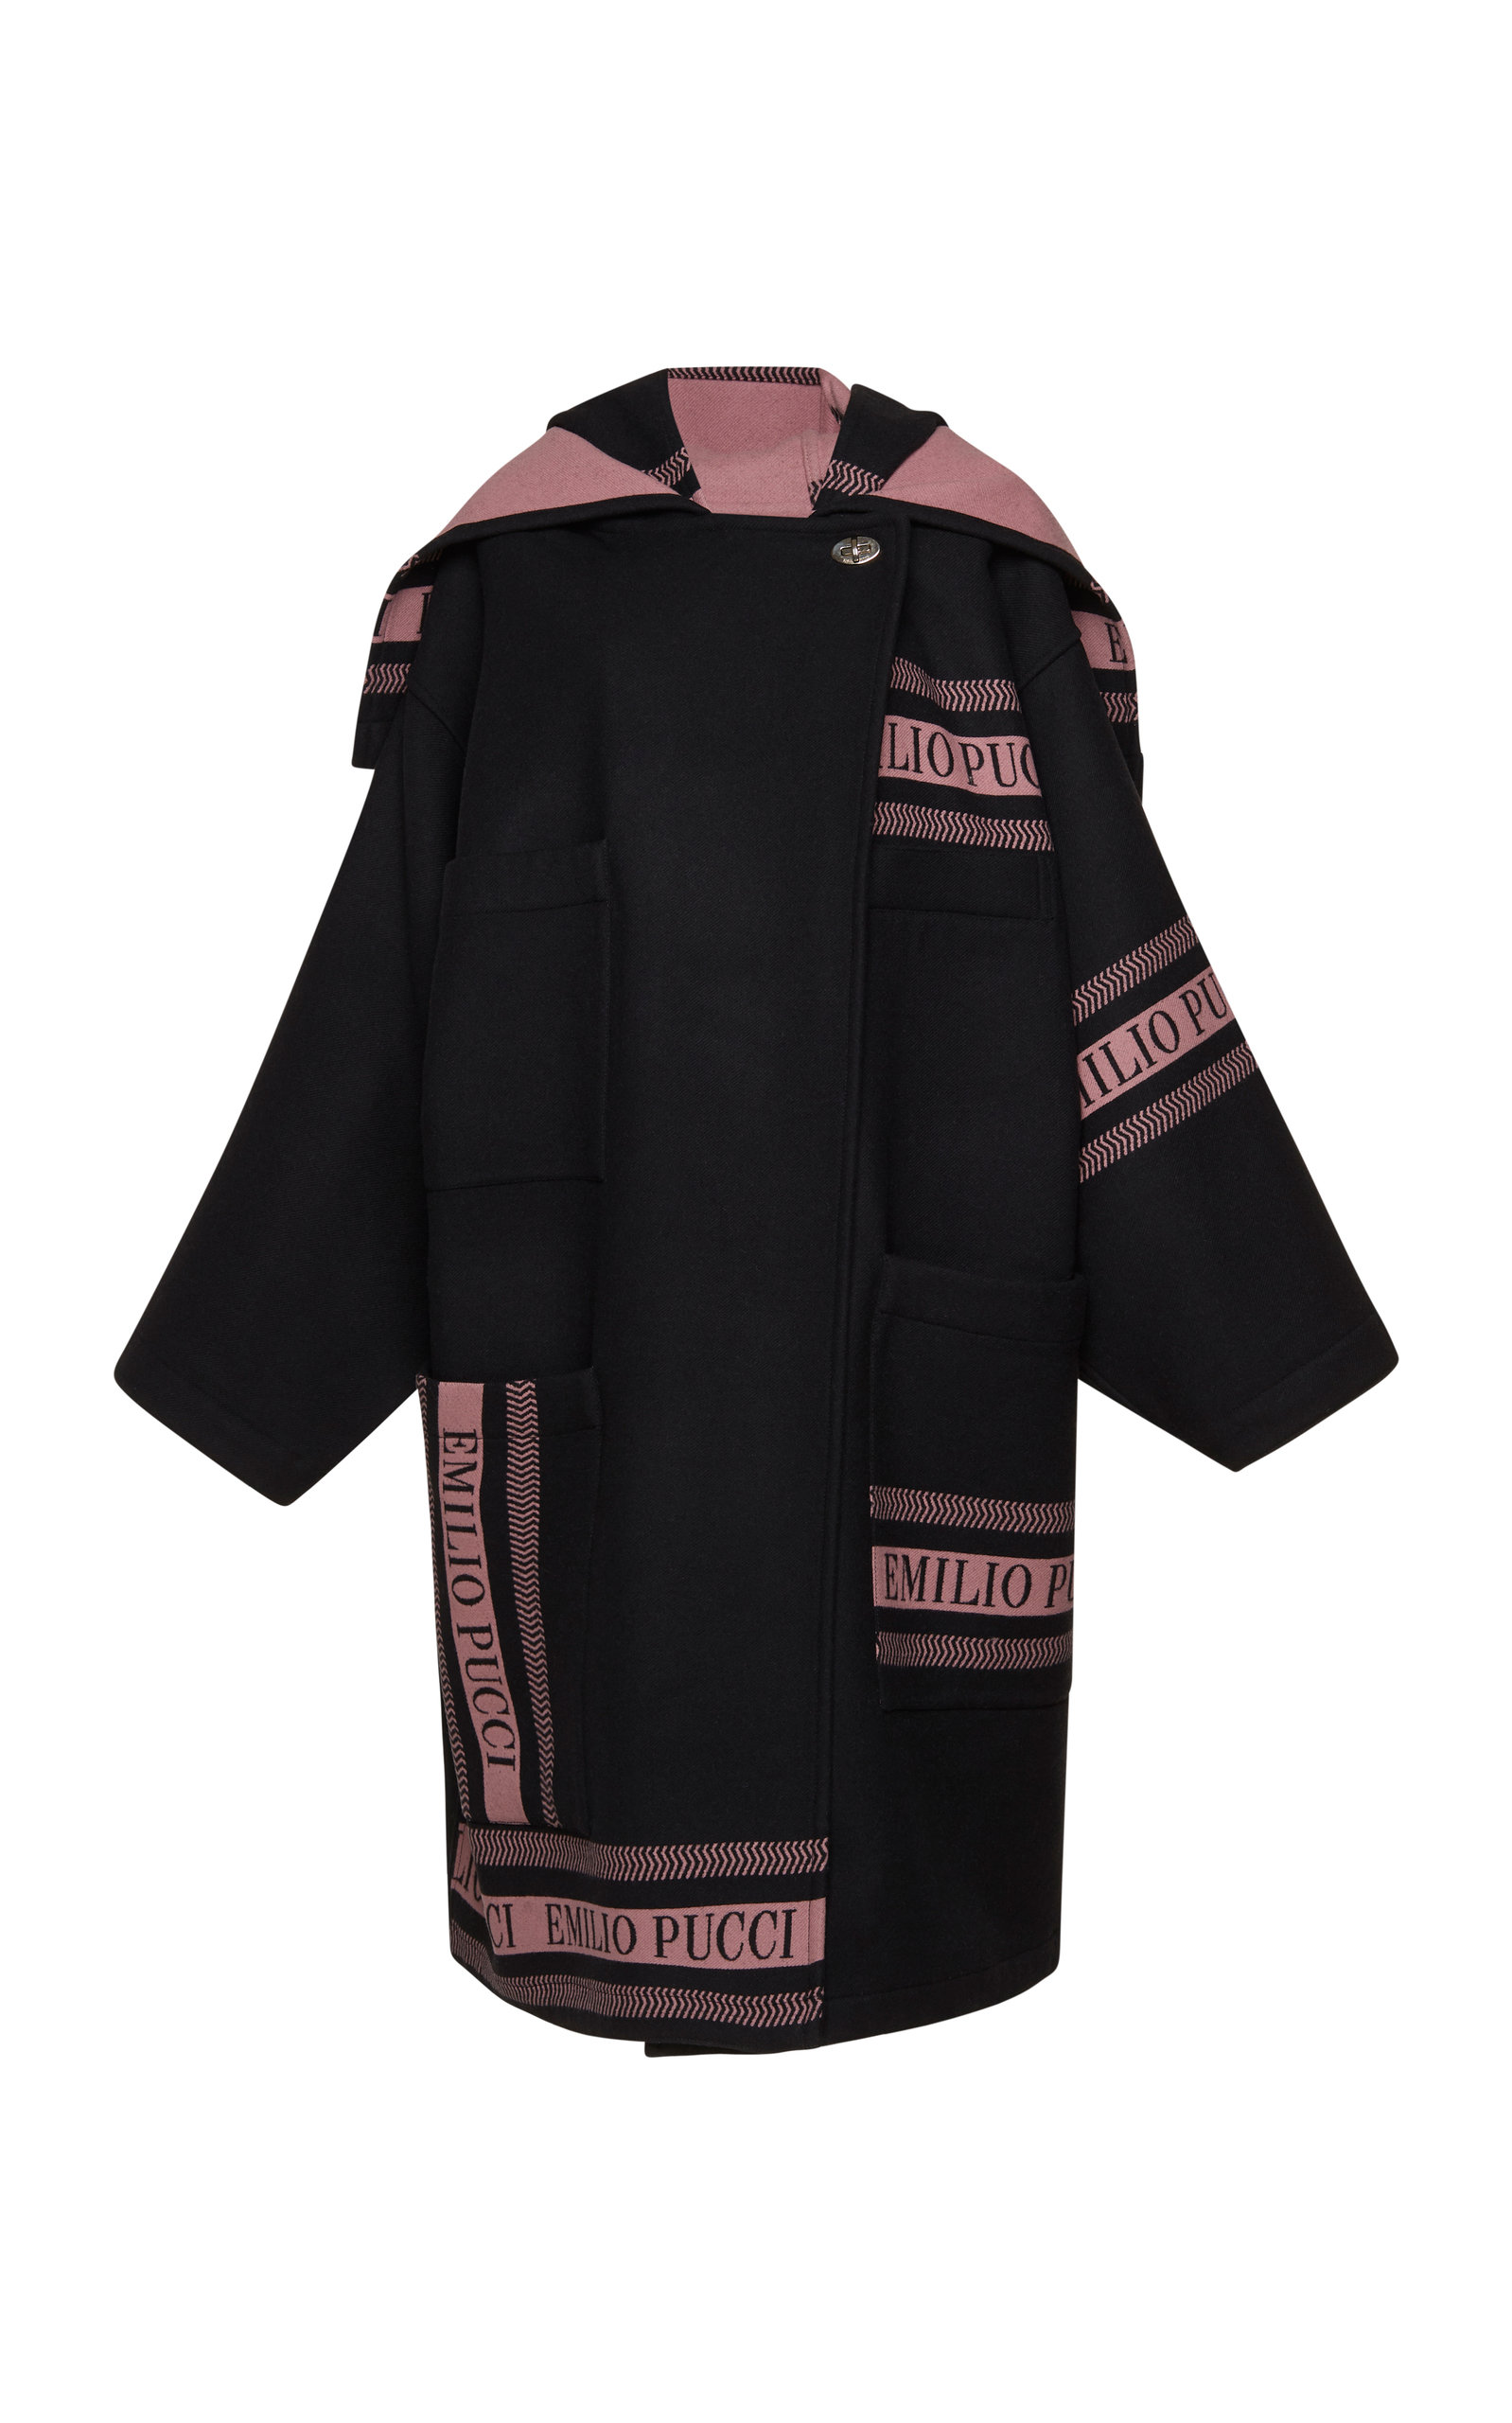 e4789beffc30 Wool Hooded Coat by Emilio Pucci